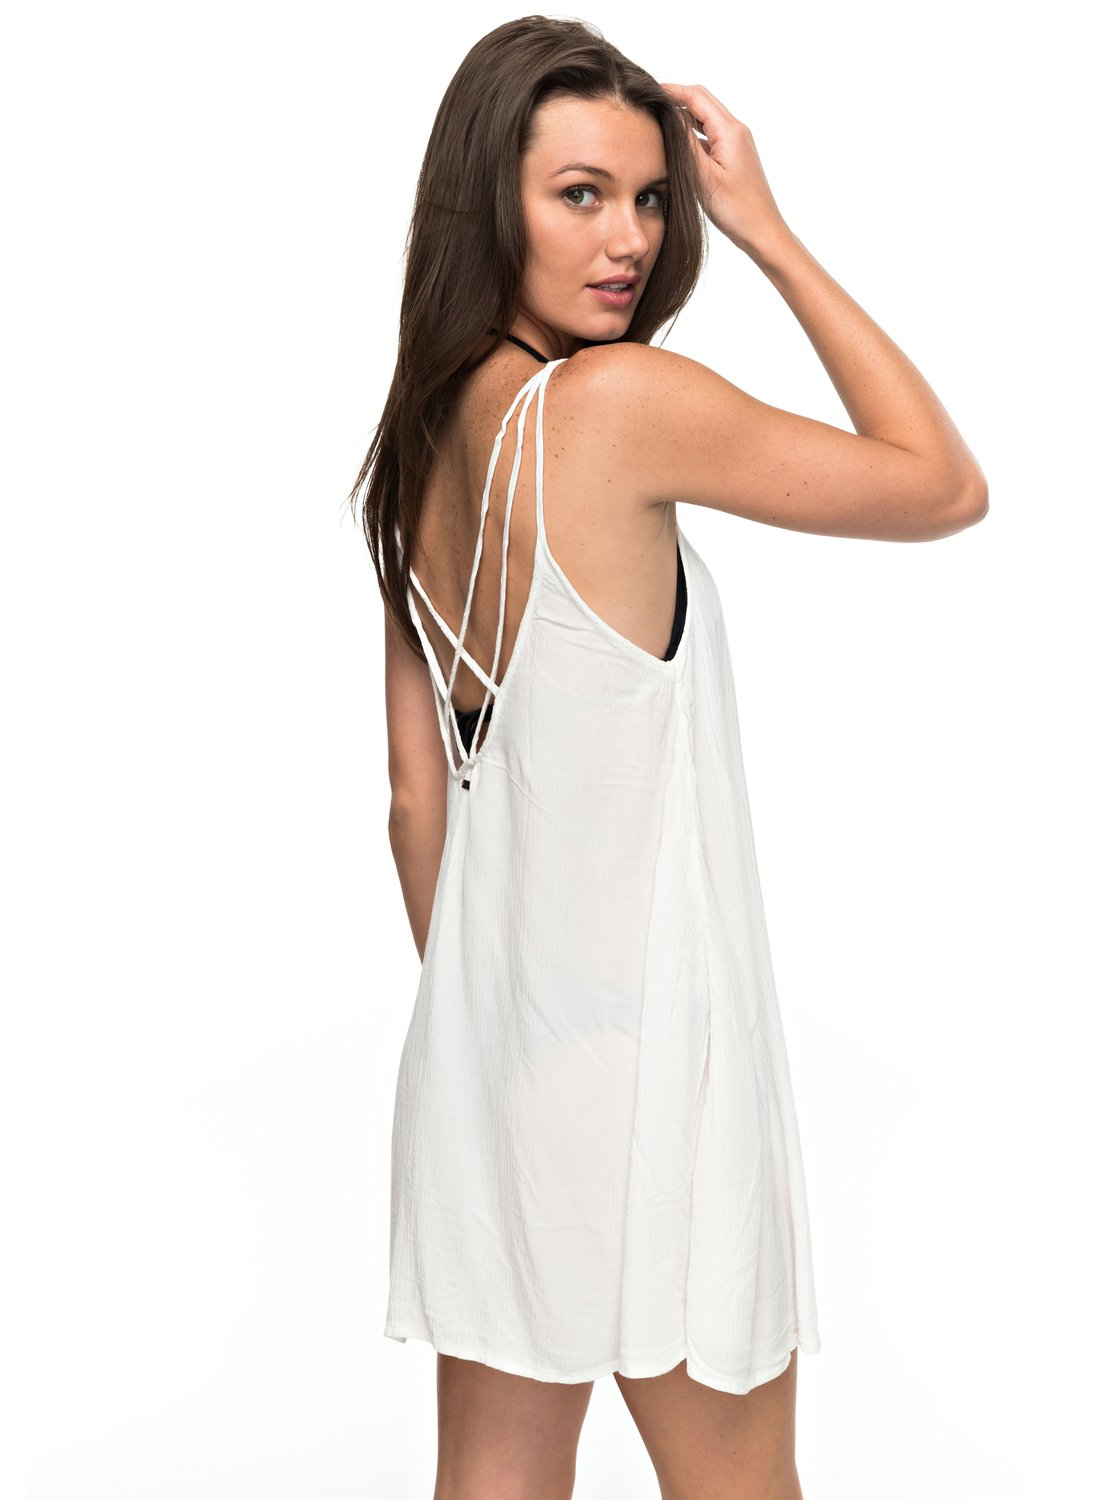 2d8ca4cade Cover-up dress for women. Features include: style linked to swimwear, short  length, casual & unrestricted relaxed fit, lightweight, round neckline and  back ...